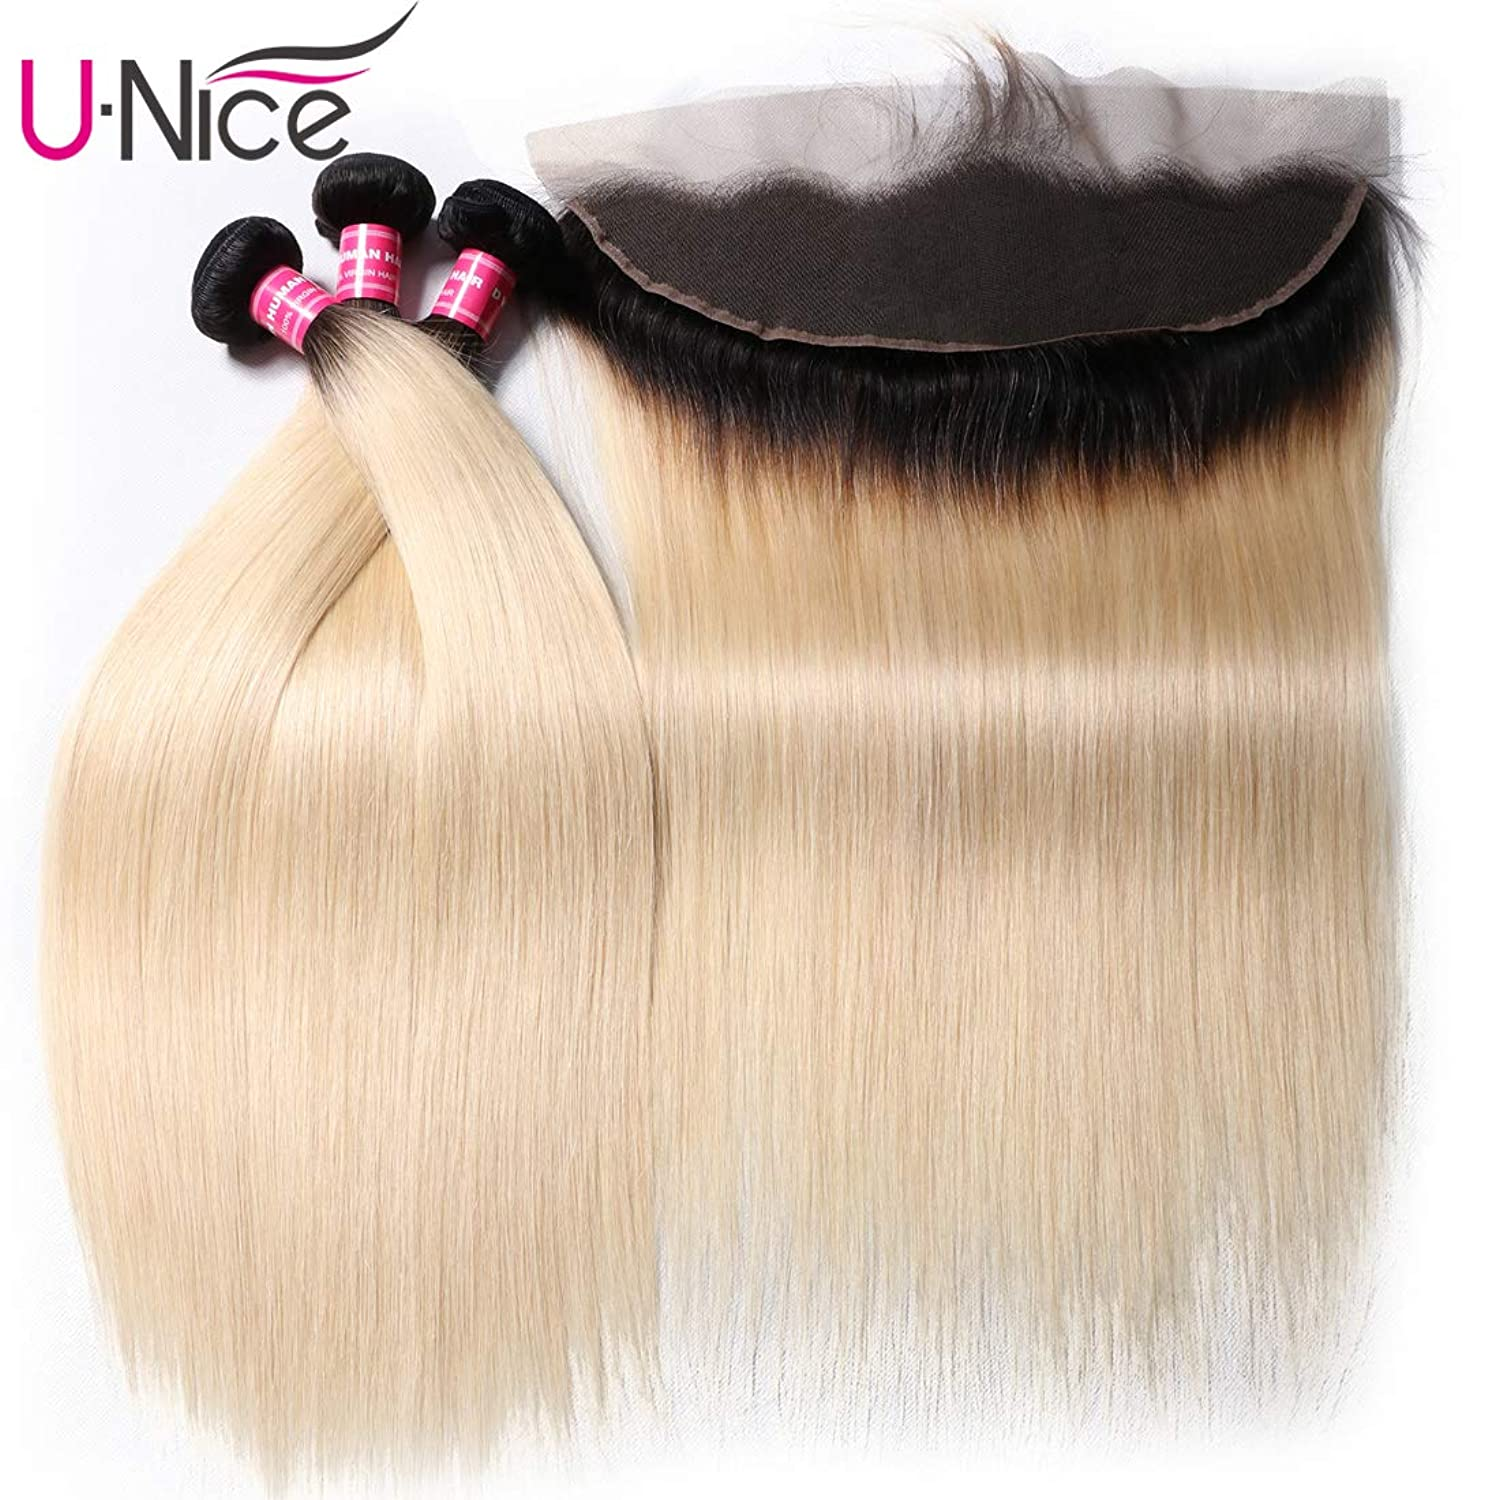 UNice Hair 10A Brazilian Dark Root Ombre Blonde Straight Hair Bundles with Free Part 13x4 Lace Frontal, Pre Plucked with Baby Hair, 100% Human Remy Hair (16 16 16+14 Frontal, 1b/613 Color)